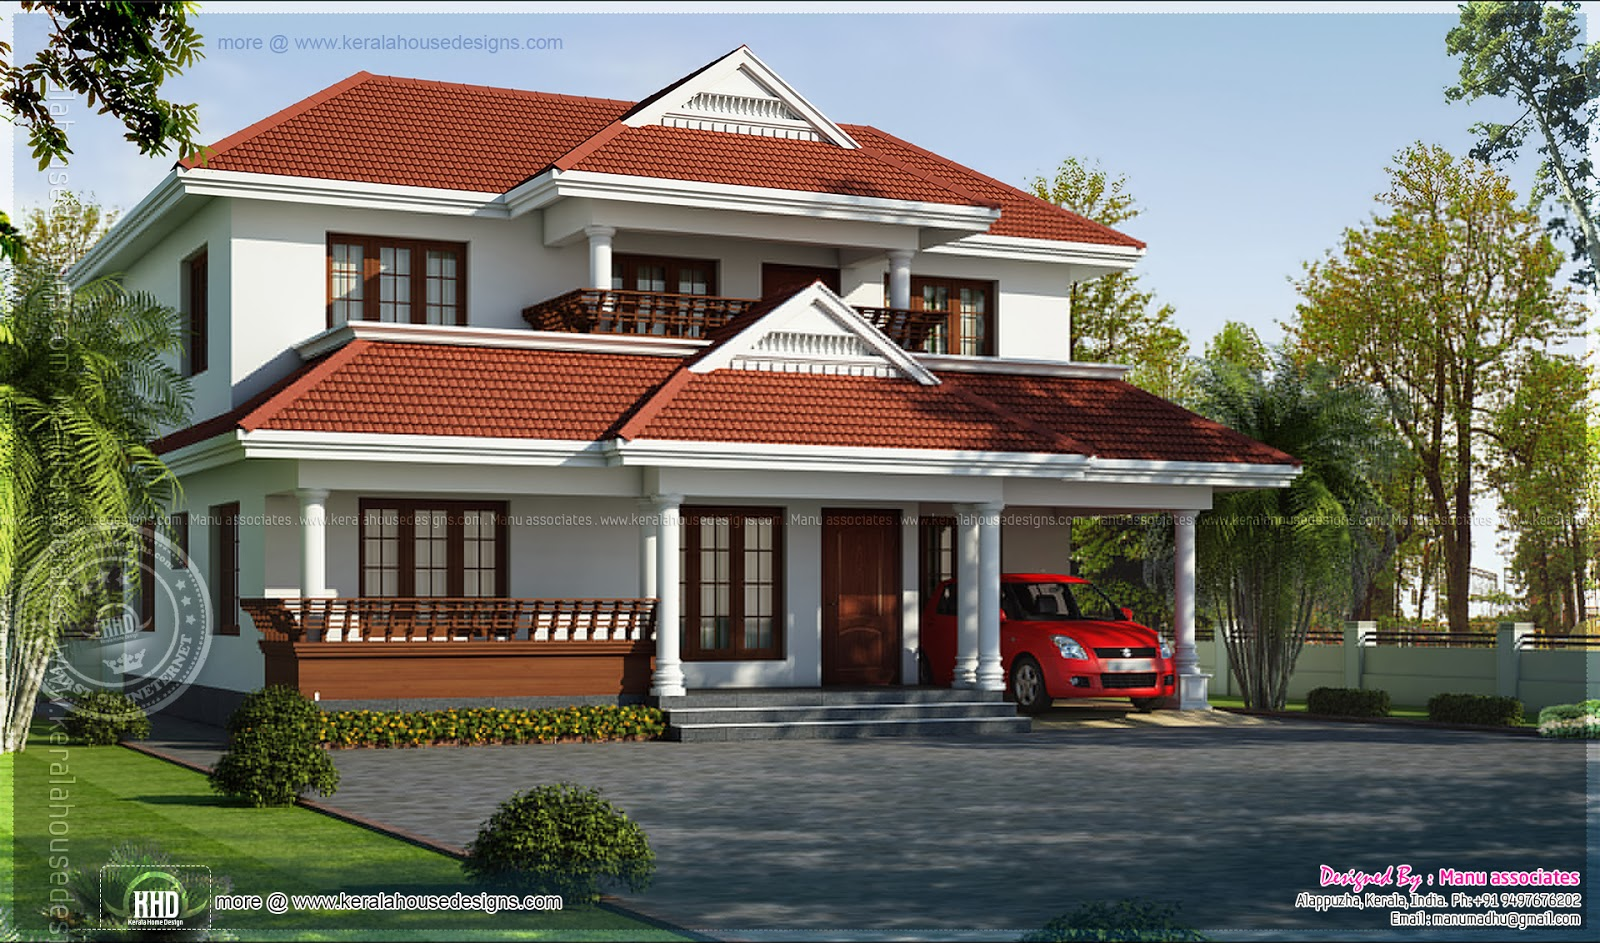 4 bedroom kerala model house in 2020 square feet kerala for Kerala house models photos